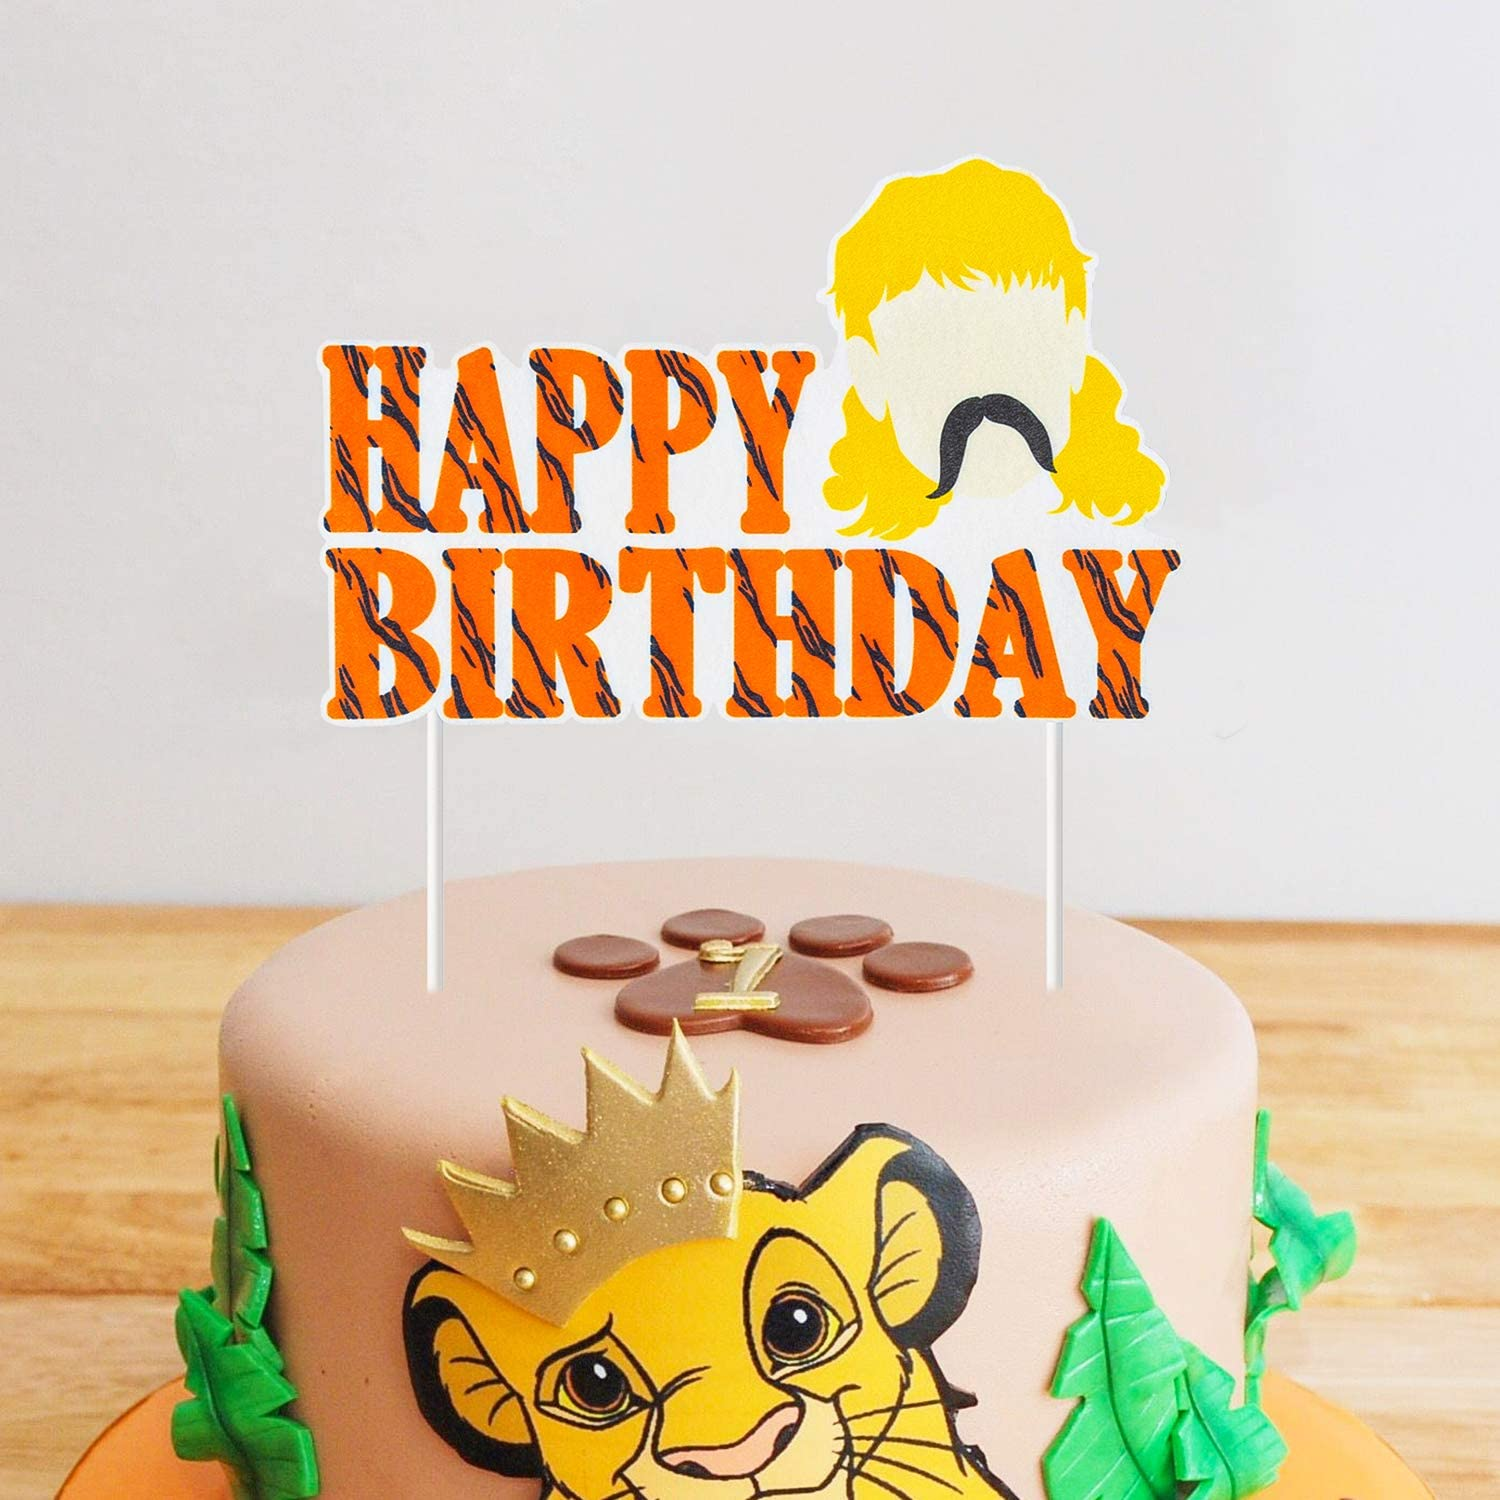 ANGOLIO Tiger King Happy Birthday Cake Toppers Themed Birthday Party Favor Cupcakes Topper The King Cake Decoration Baby Shower Tiger Party Supplies Cakes Deserts Fruits Accessories Photo booth